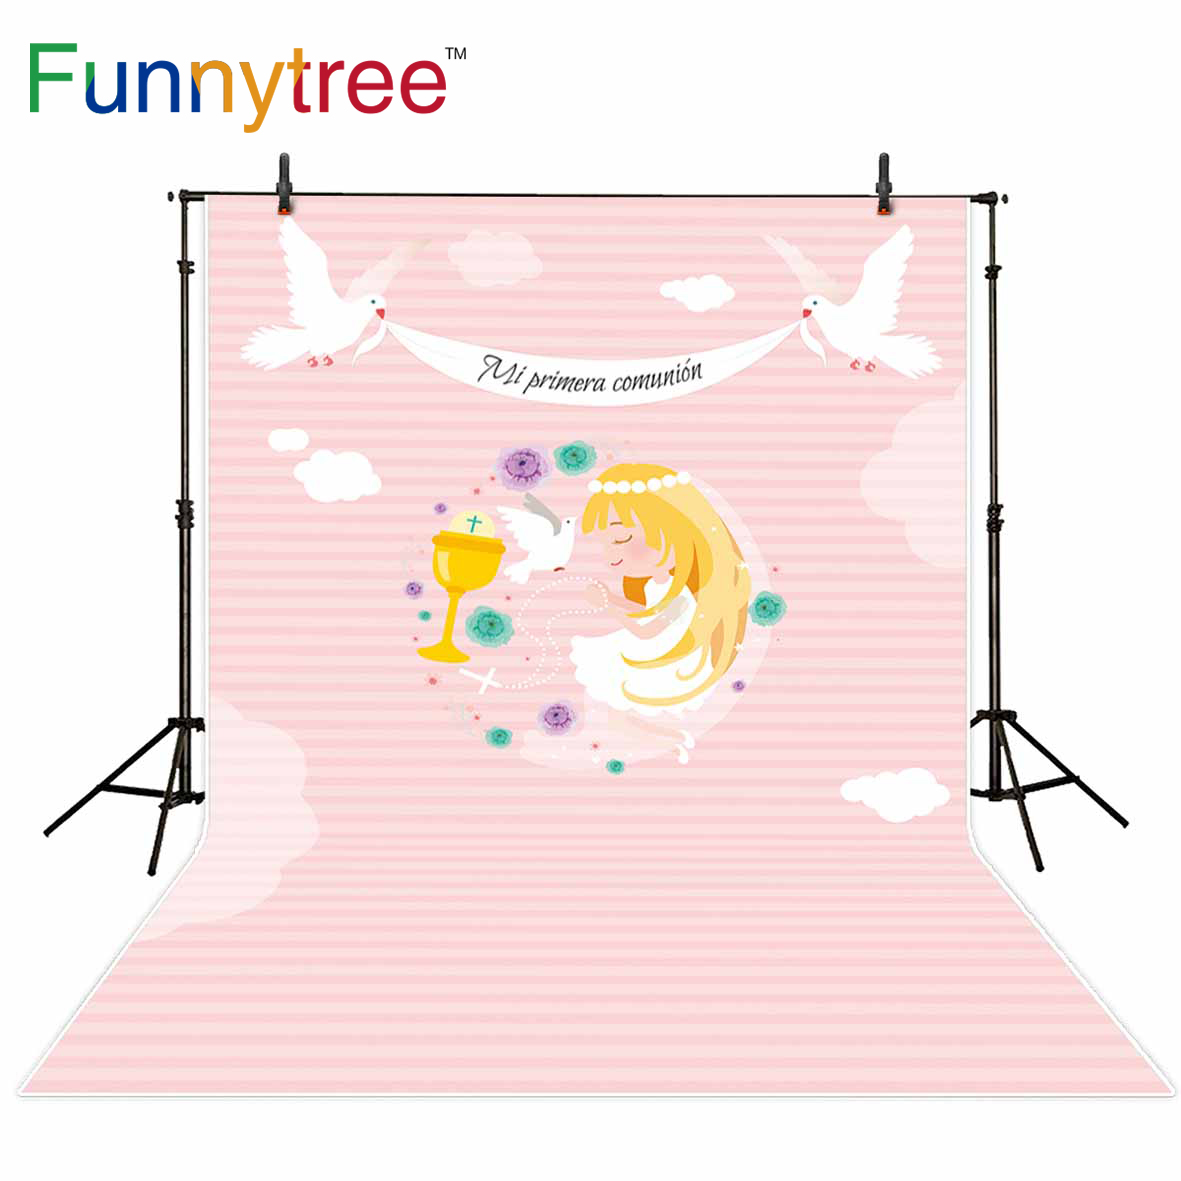 Funnytree photography backdrop pink girl communion peace dove sky background photocall photobooth photographic photo shoot